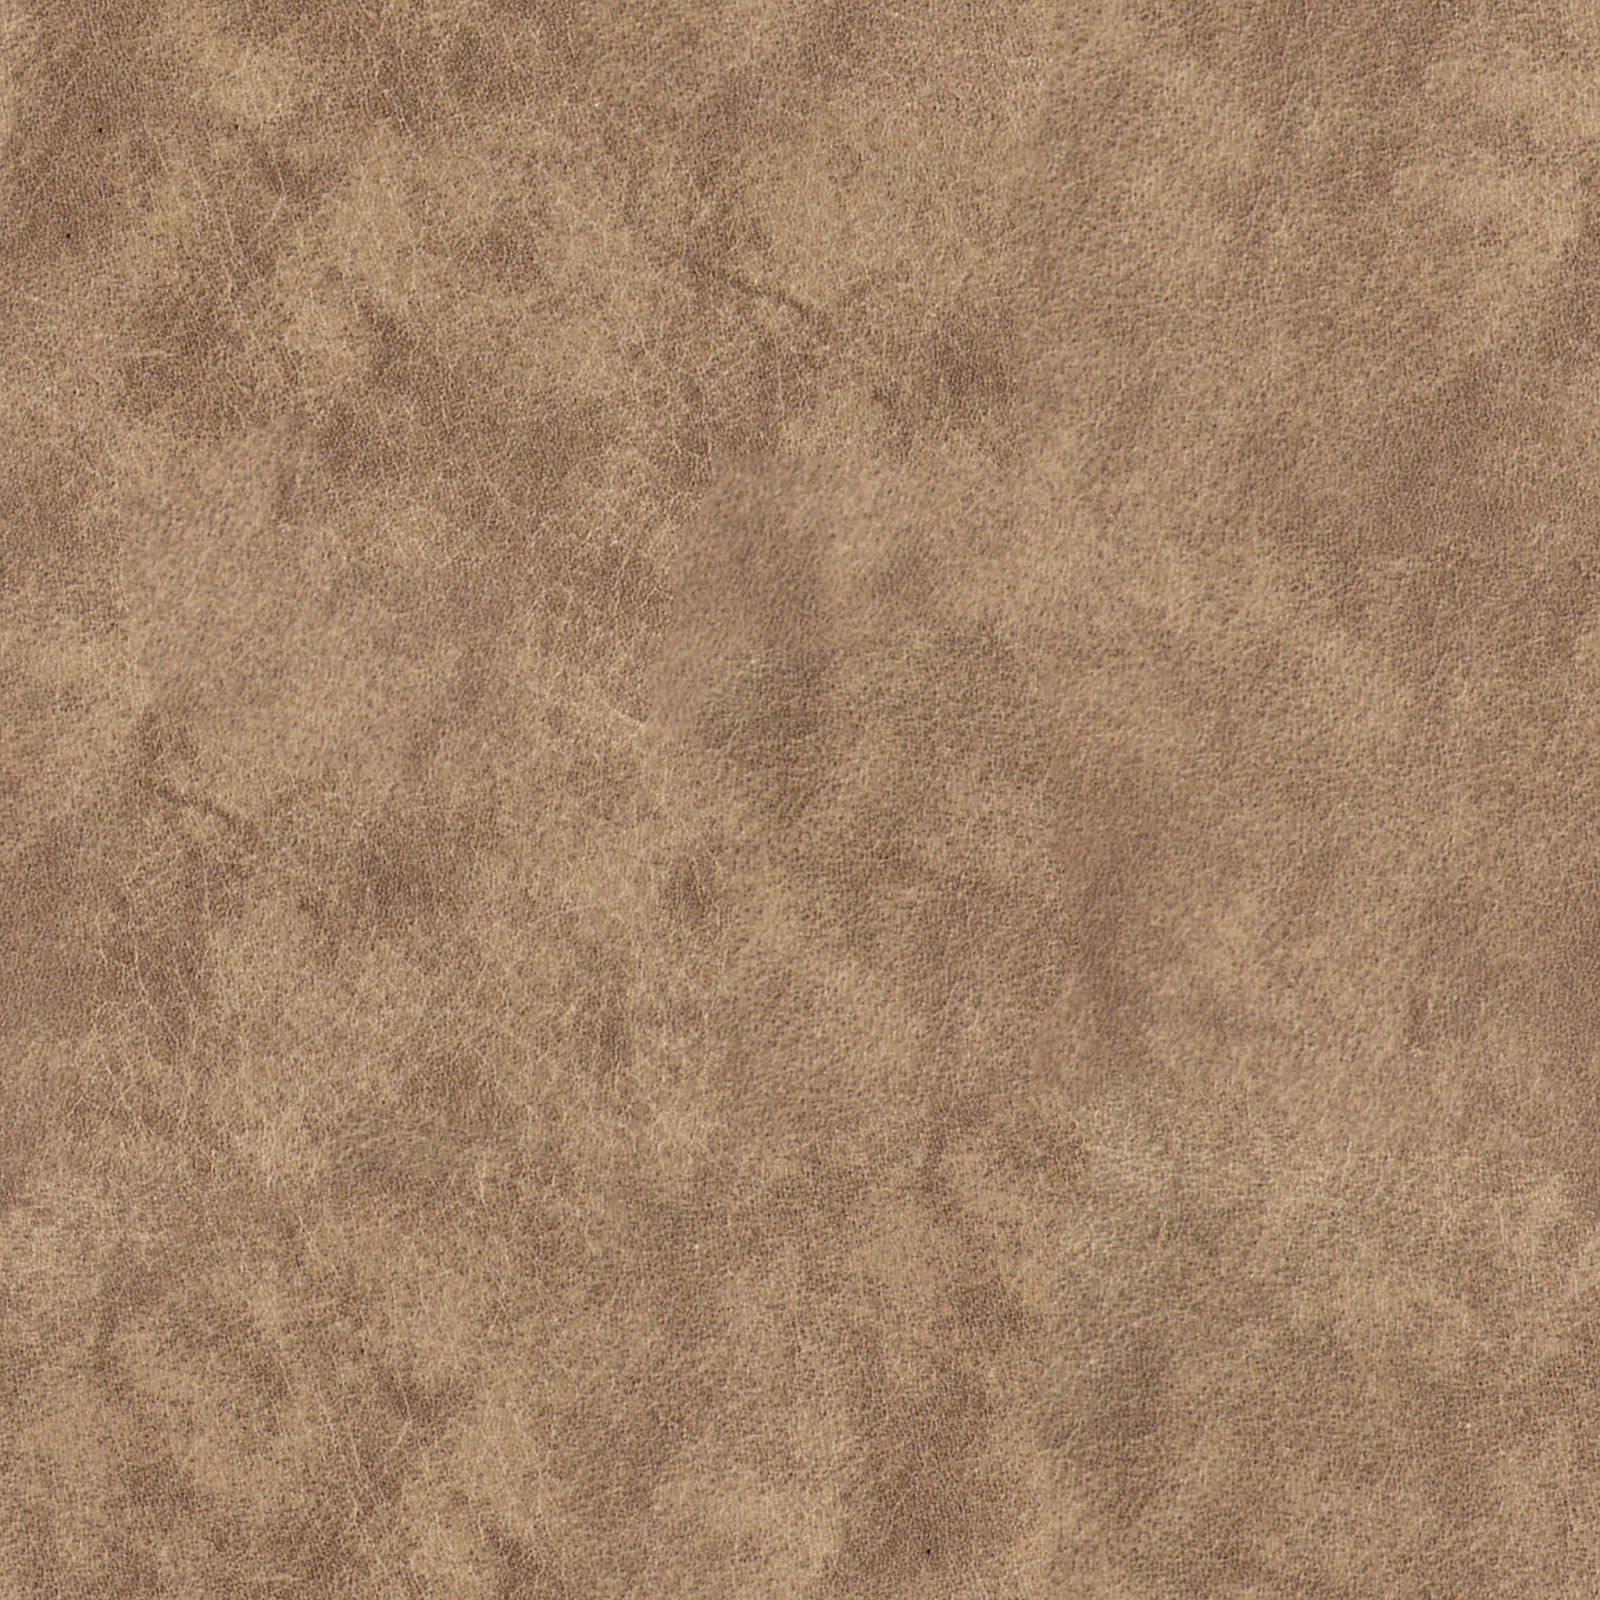 Brown Seamless Fabric Textures Seamless Old Brown Leather Texture Texturise Free